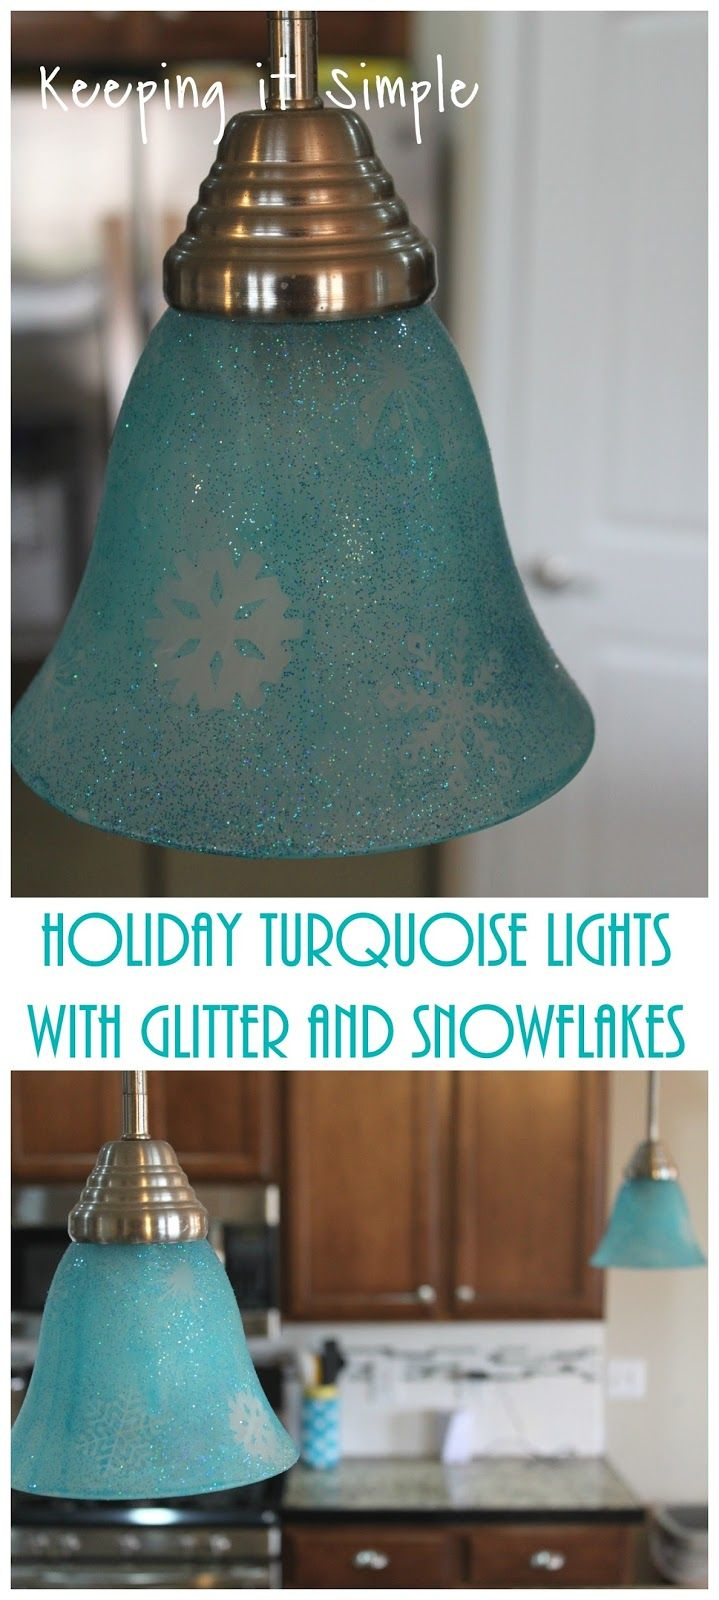 turquoise pendant lighting. How To Dye Light Shades- Holiday Turquoise Pendants Lights With Glitter And Snowflakes Pendant Lighting T